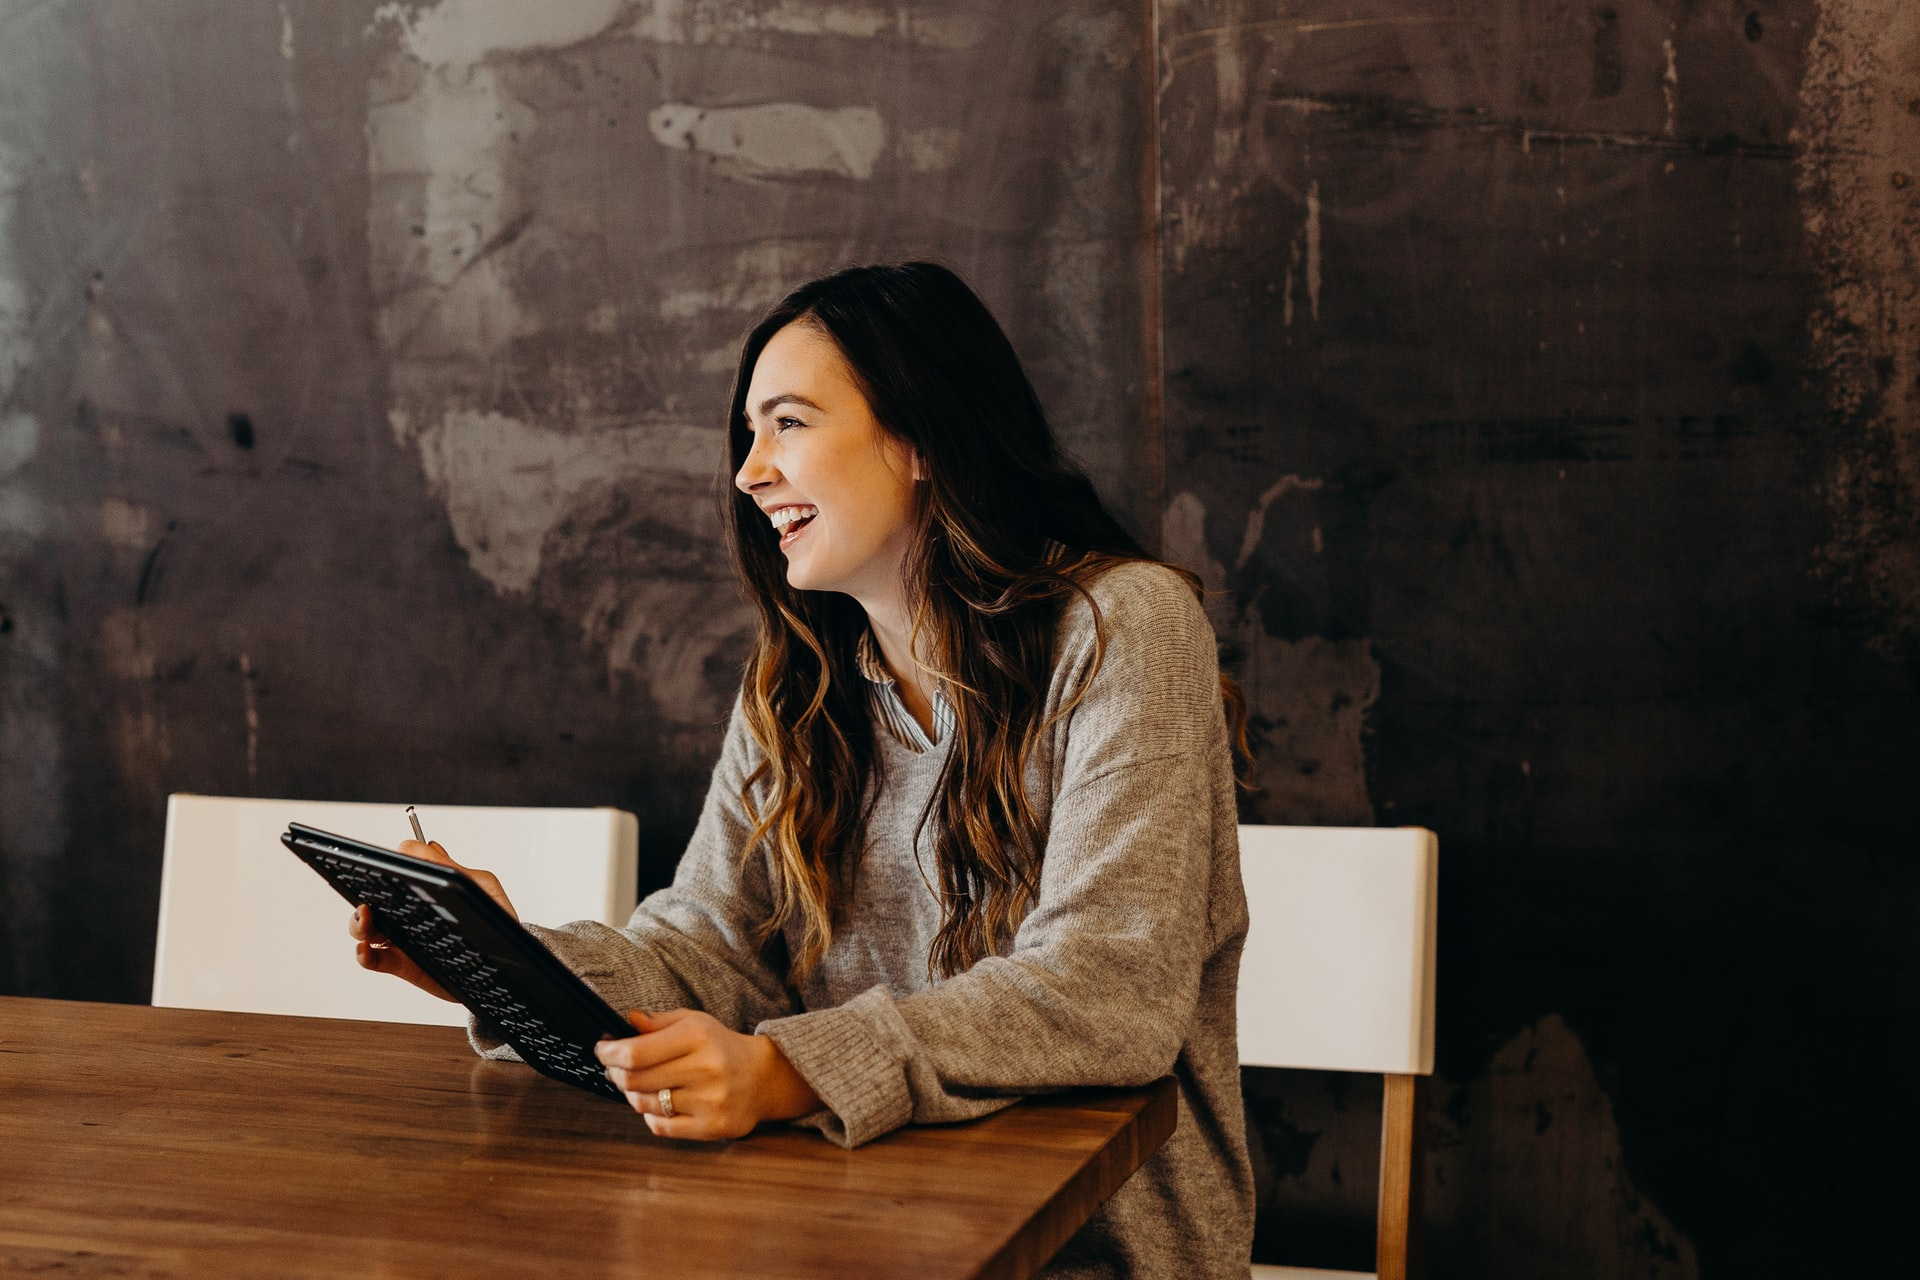 How To Make the Most of Your Small Business